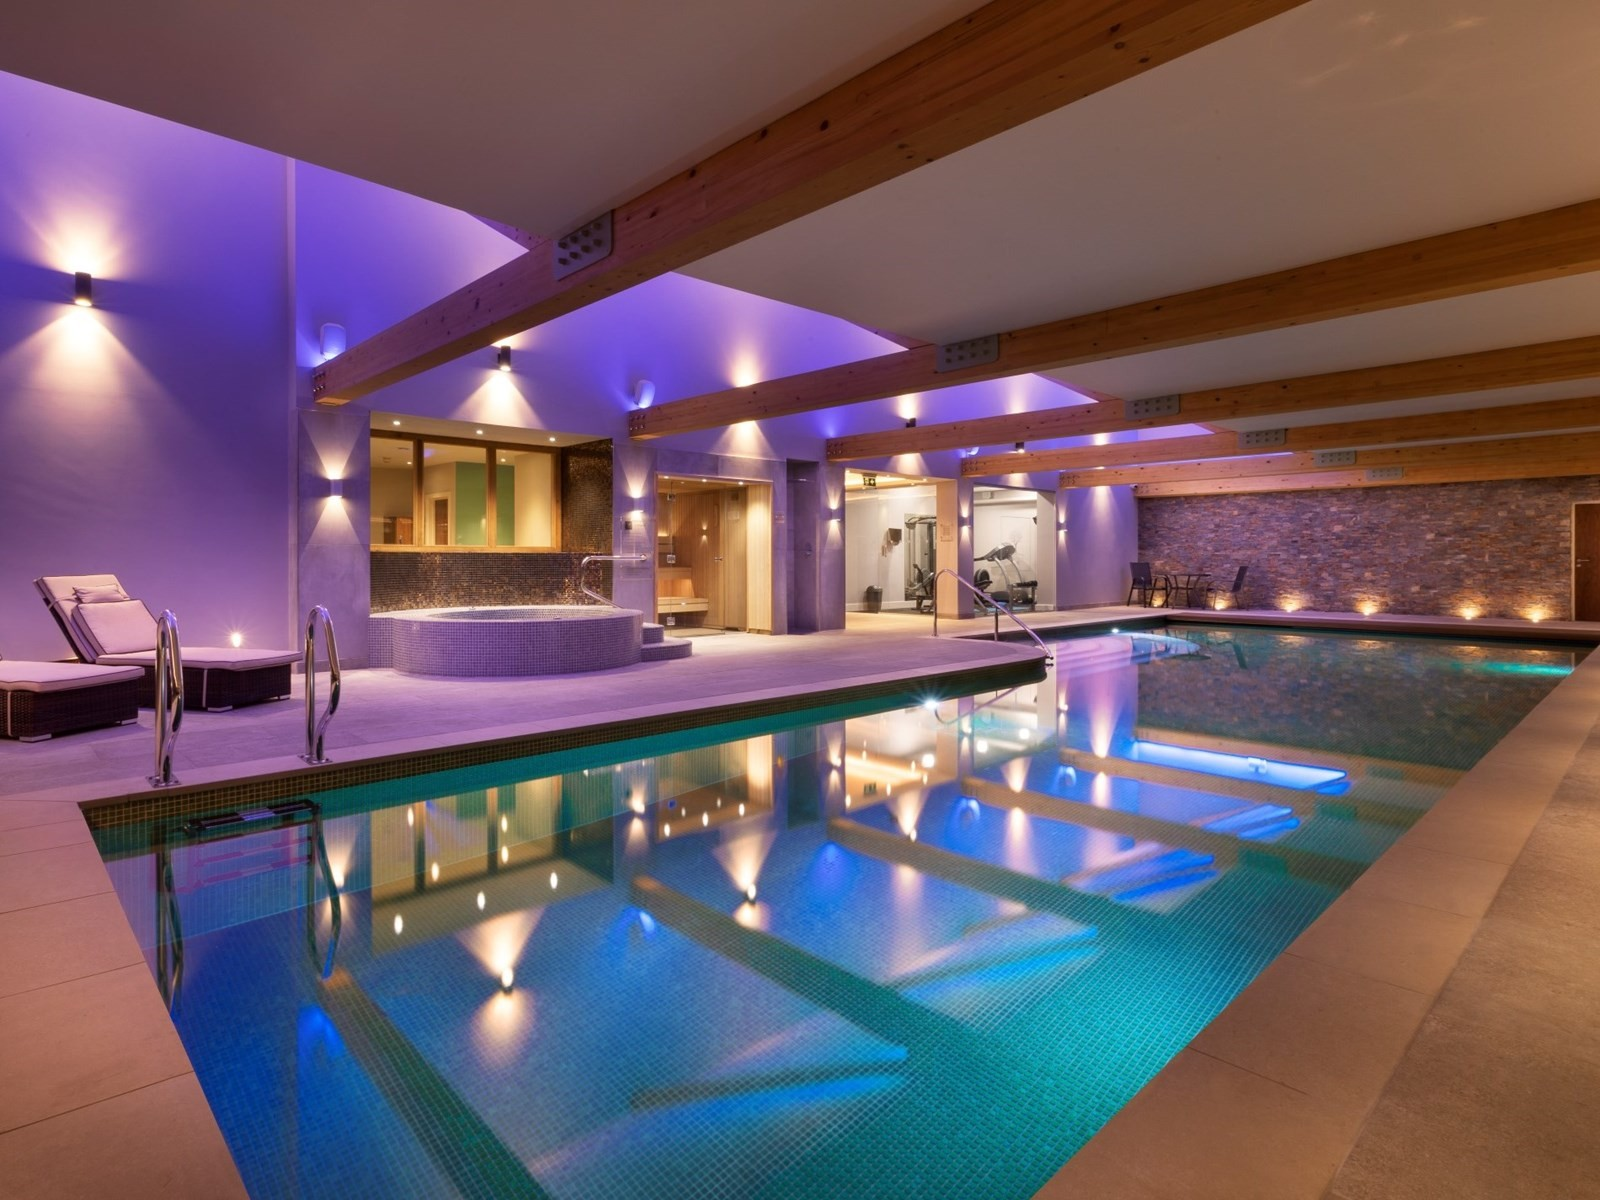 The Spa at Mirefoot